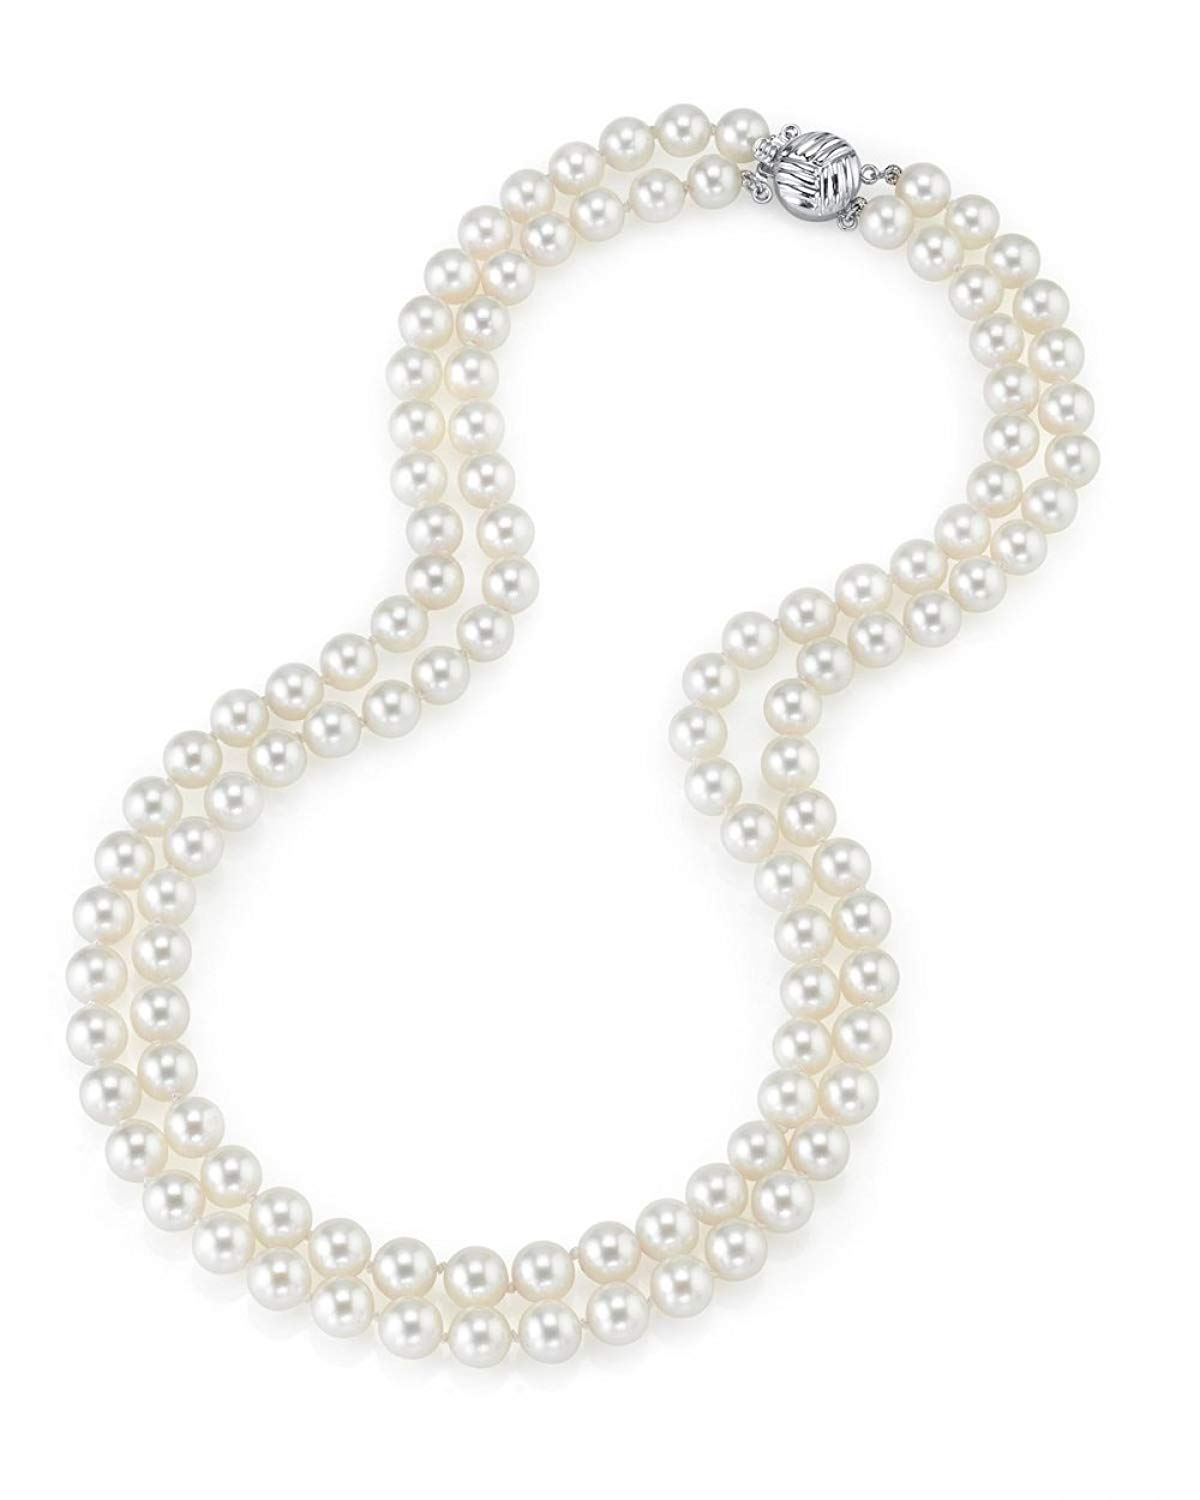 """THE PEARL SOURCE 14K Gold 7-8mm AAAA Quality Double Strand White Freshwater Cultured Pearl Necklace for Women in 19-20"""" Matinee Length"""